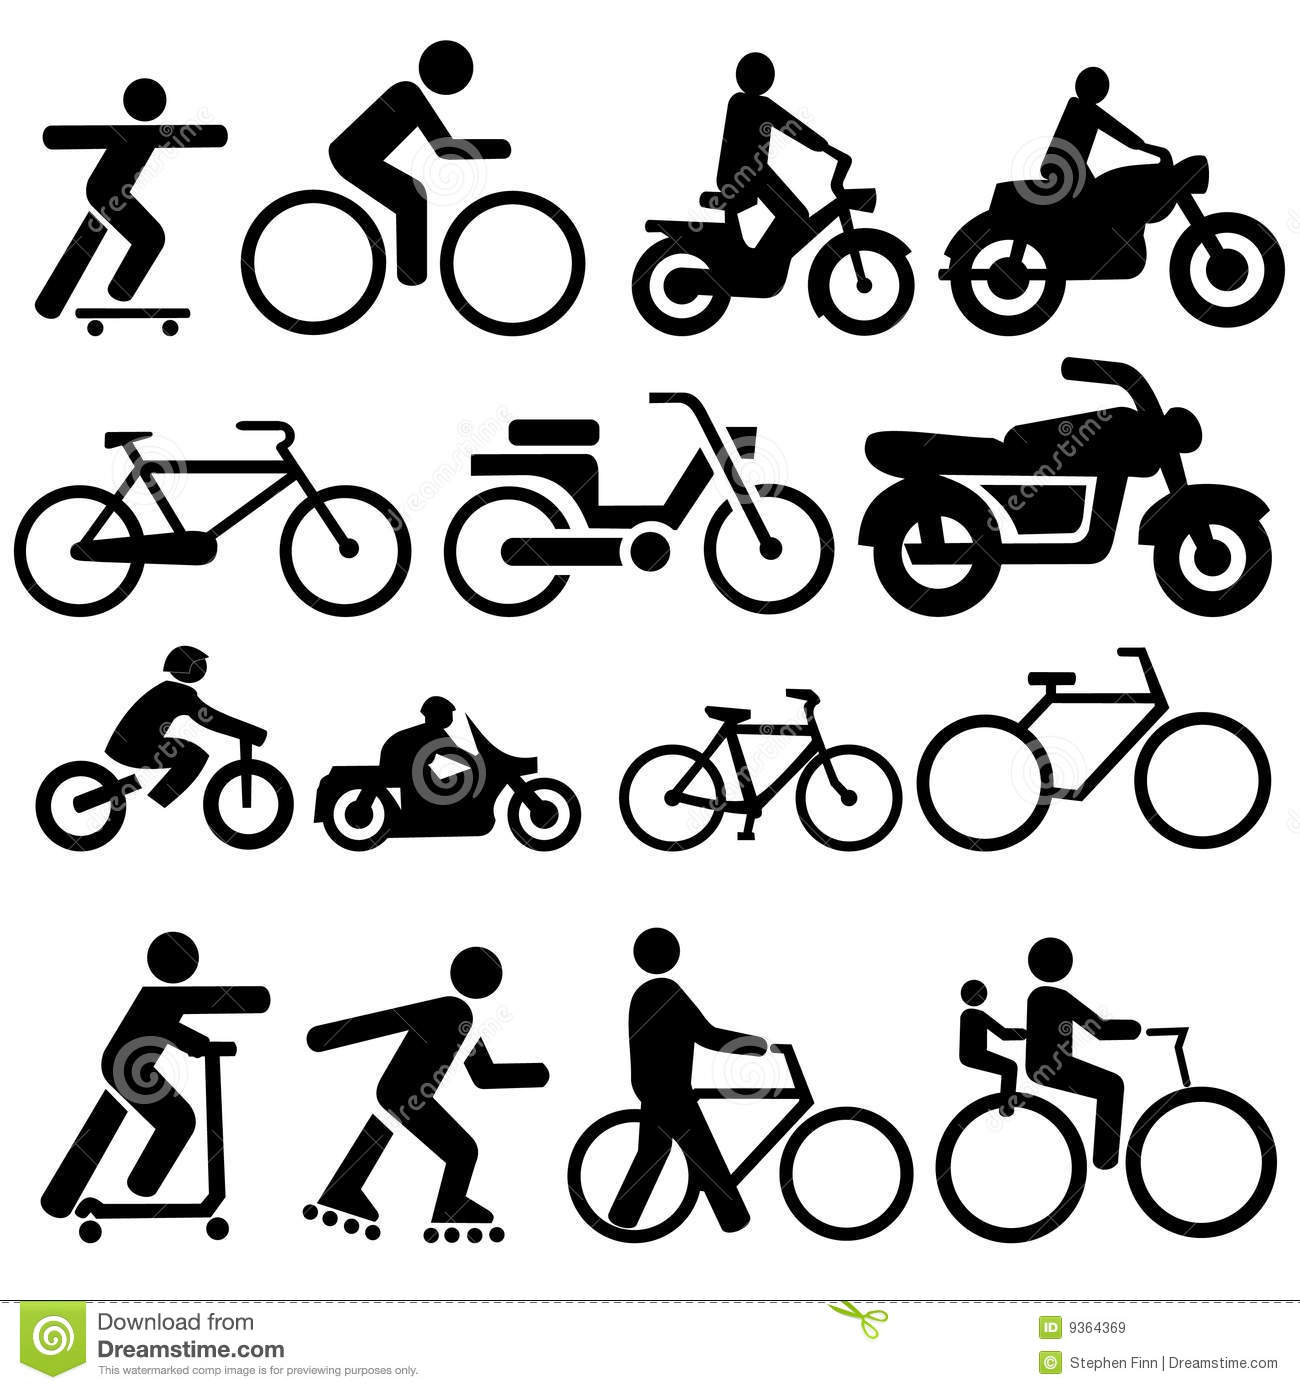 Bicycle Motorcycle Silhouettes Royalty Free Stock Images